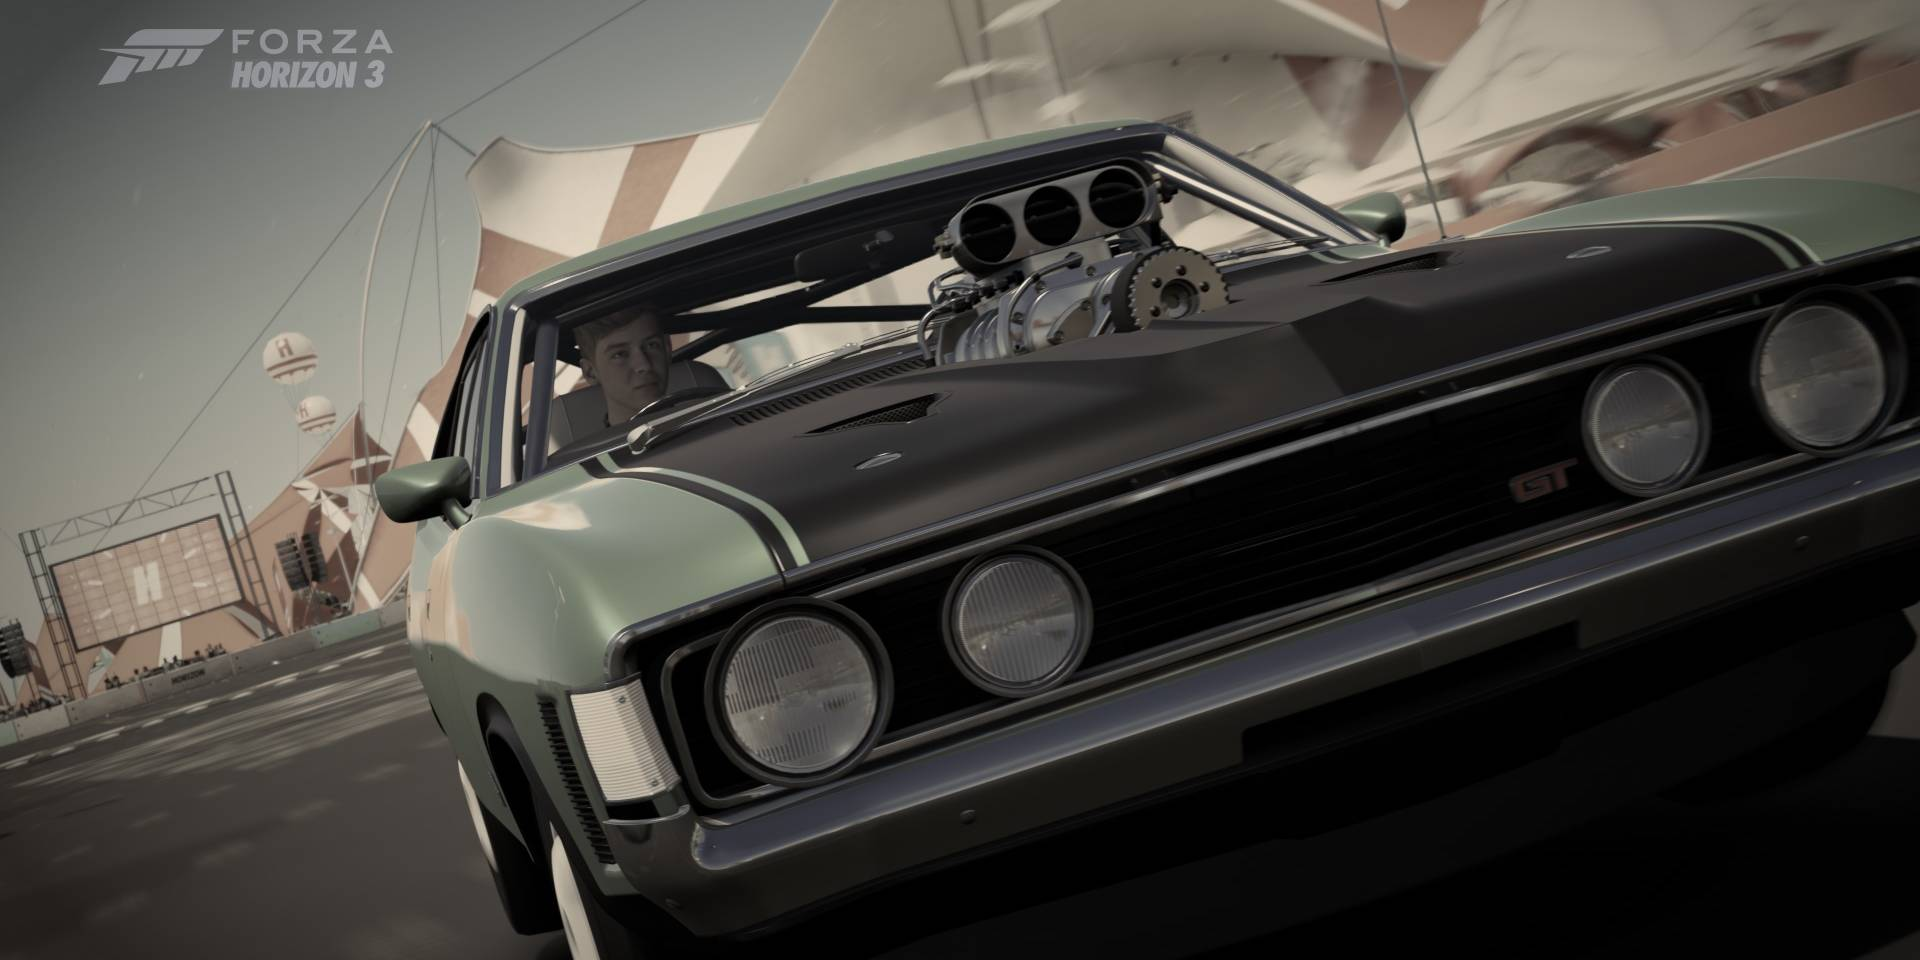 Forza Horizon Classic Cars Photo Contest Winner January